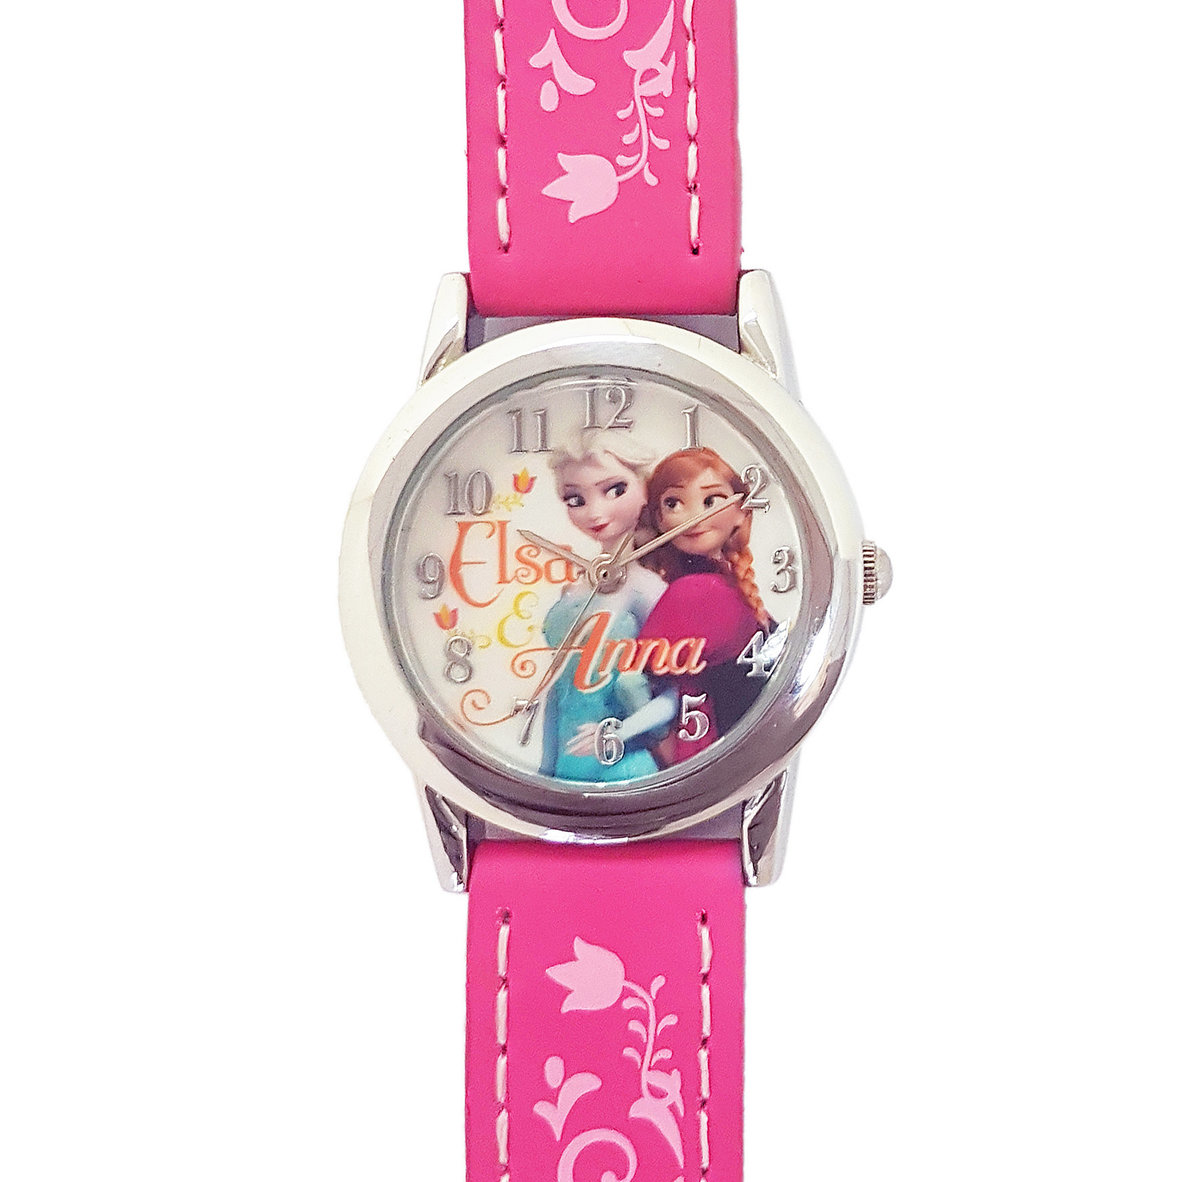 DISNEY FROZEN - Kids wrist watch - Fuchsia color (Licensed by Disney)